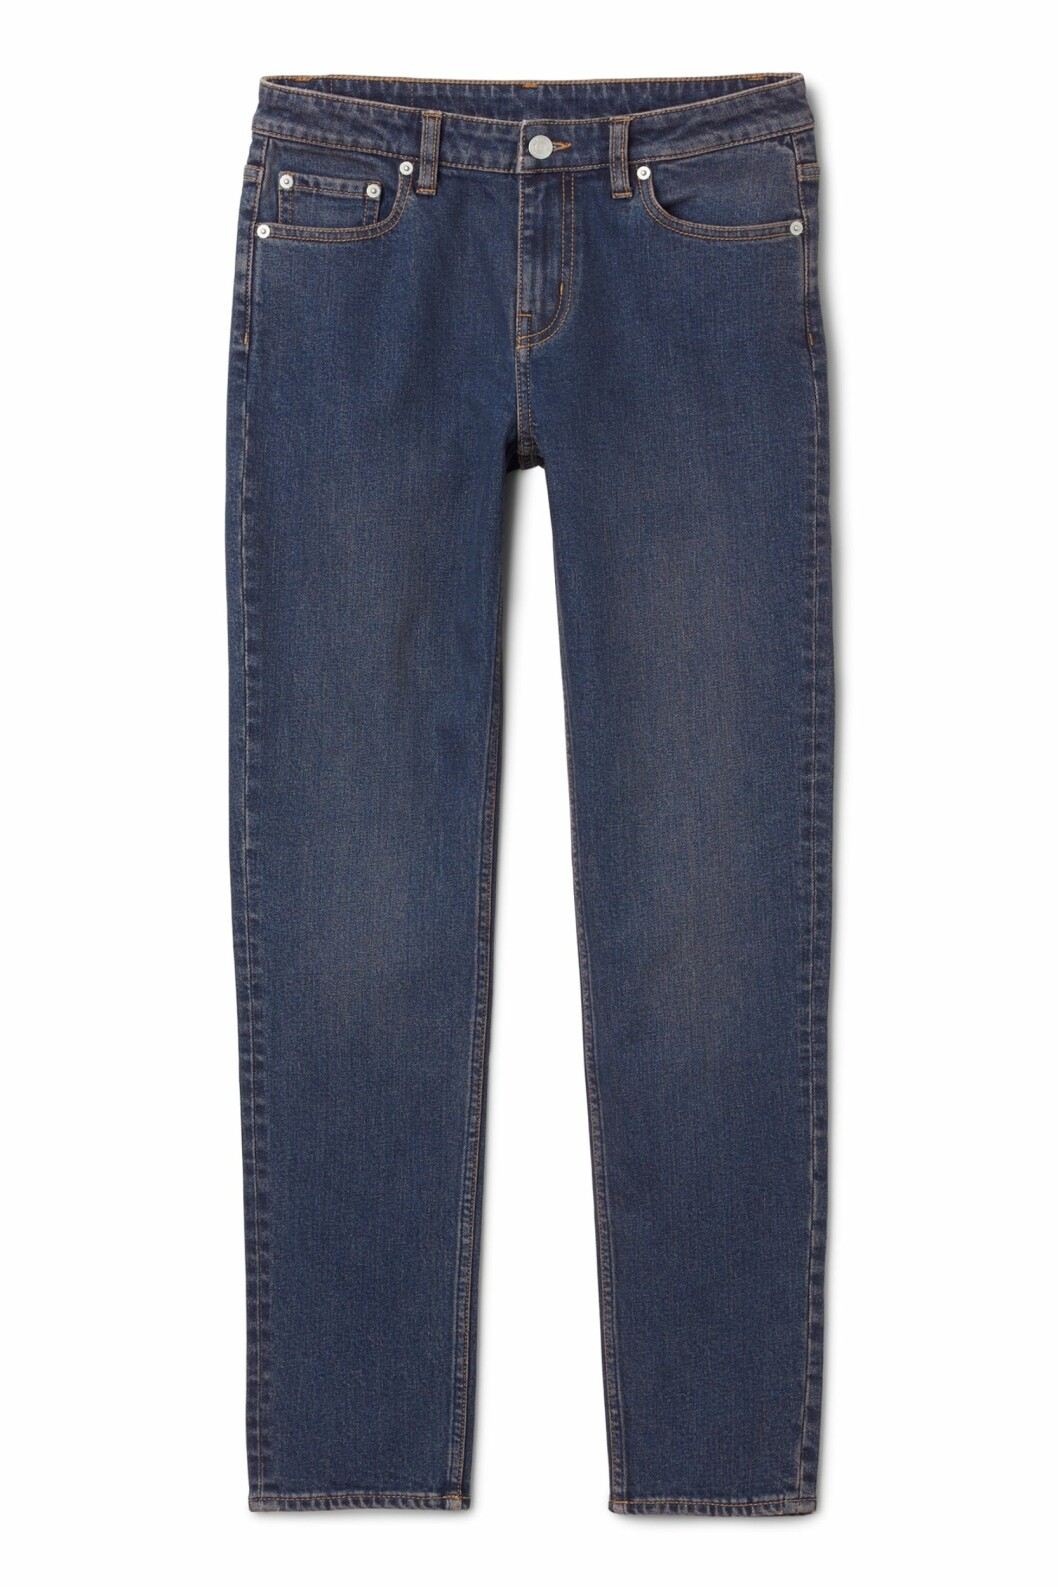 <strong>Jeans fra Weekday | kr 400 | http:</strong>//shop.weekday.com/dk/Womens_shop/New_arrivals/Beat_Car/1342358-8823450.1?image=1328240#c-47958